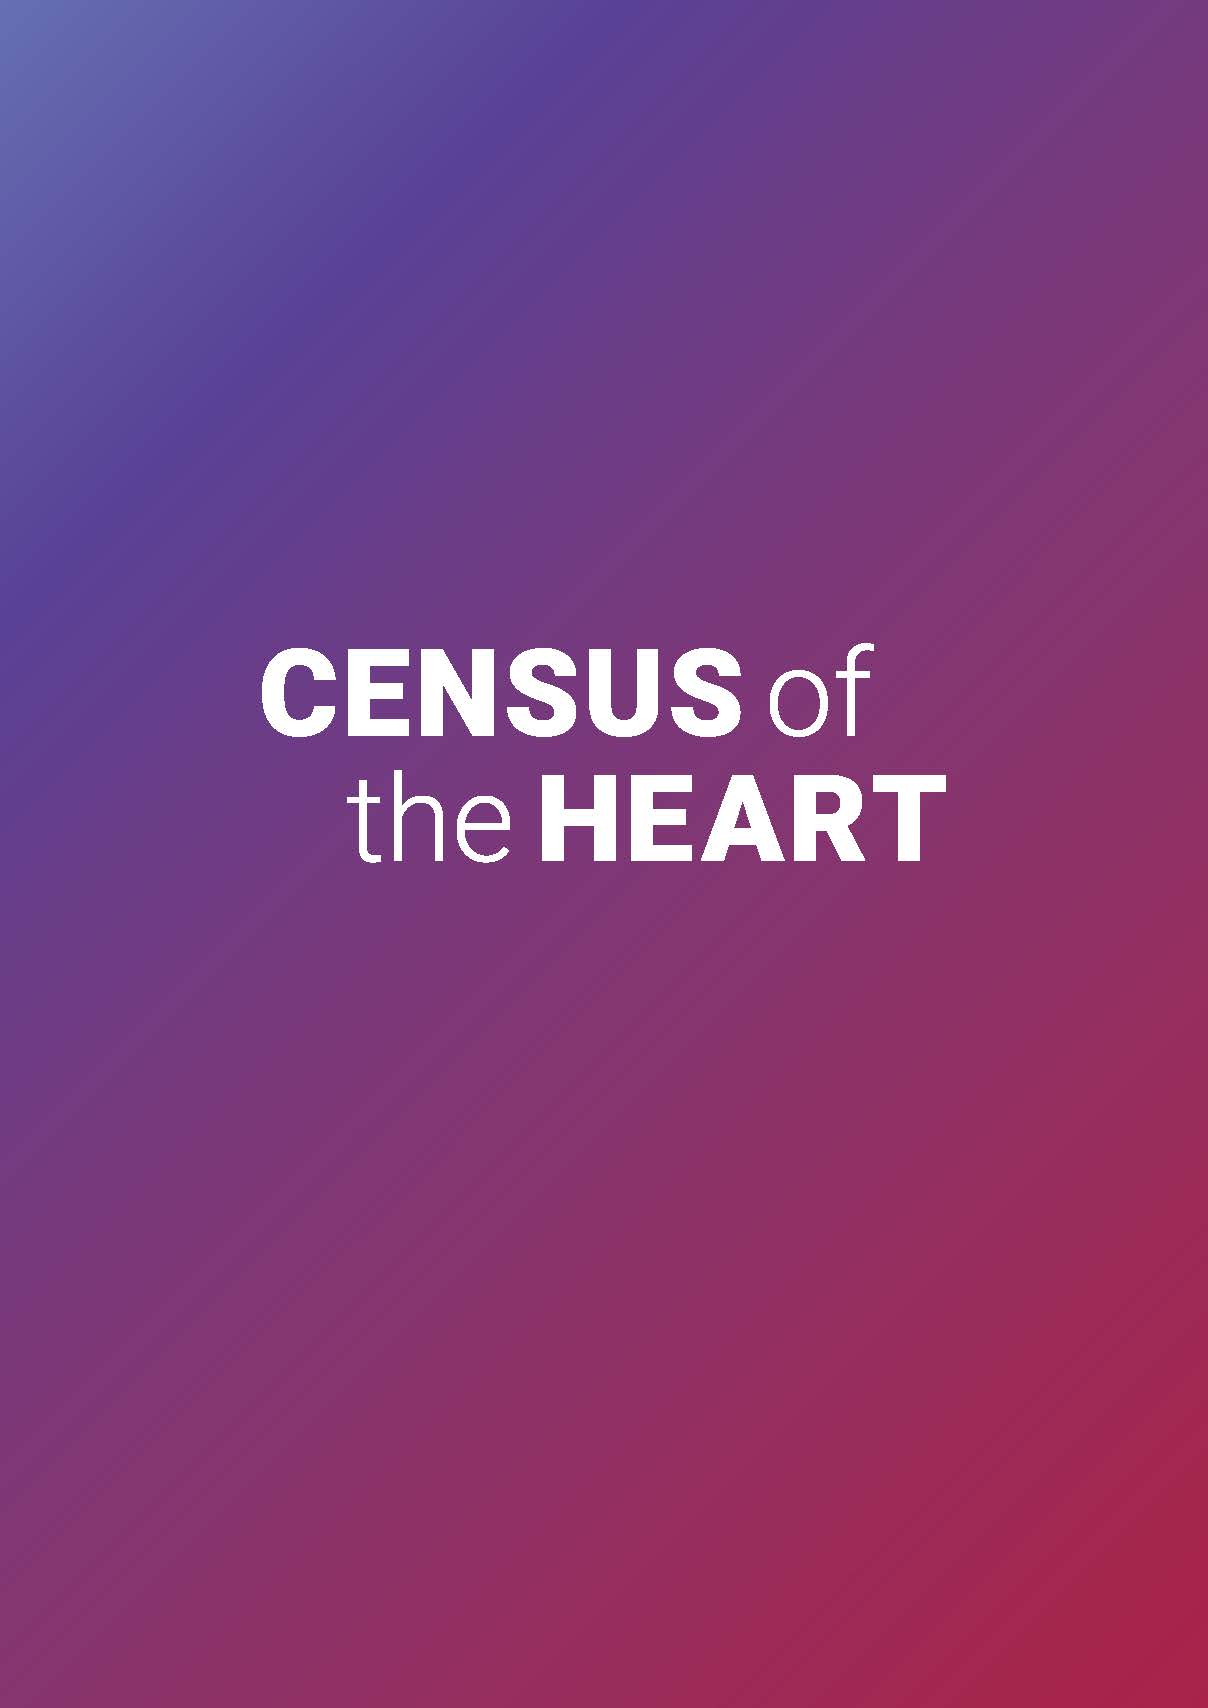 Census of the Heart 2016